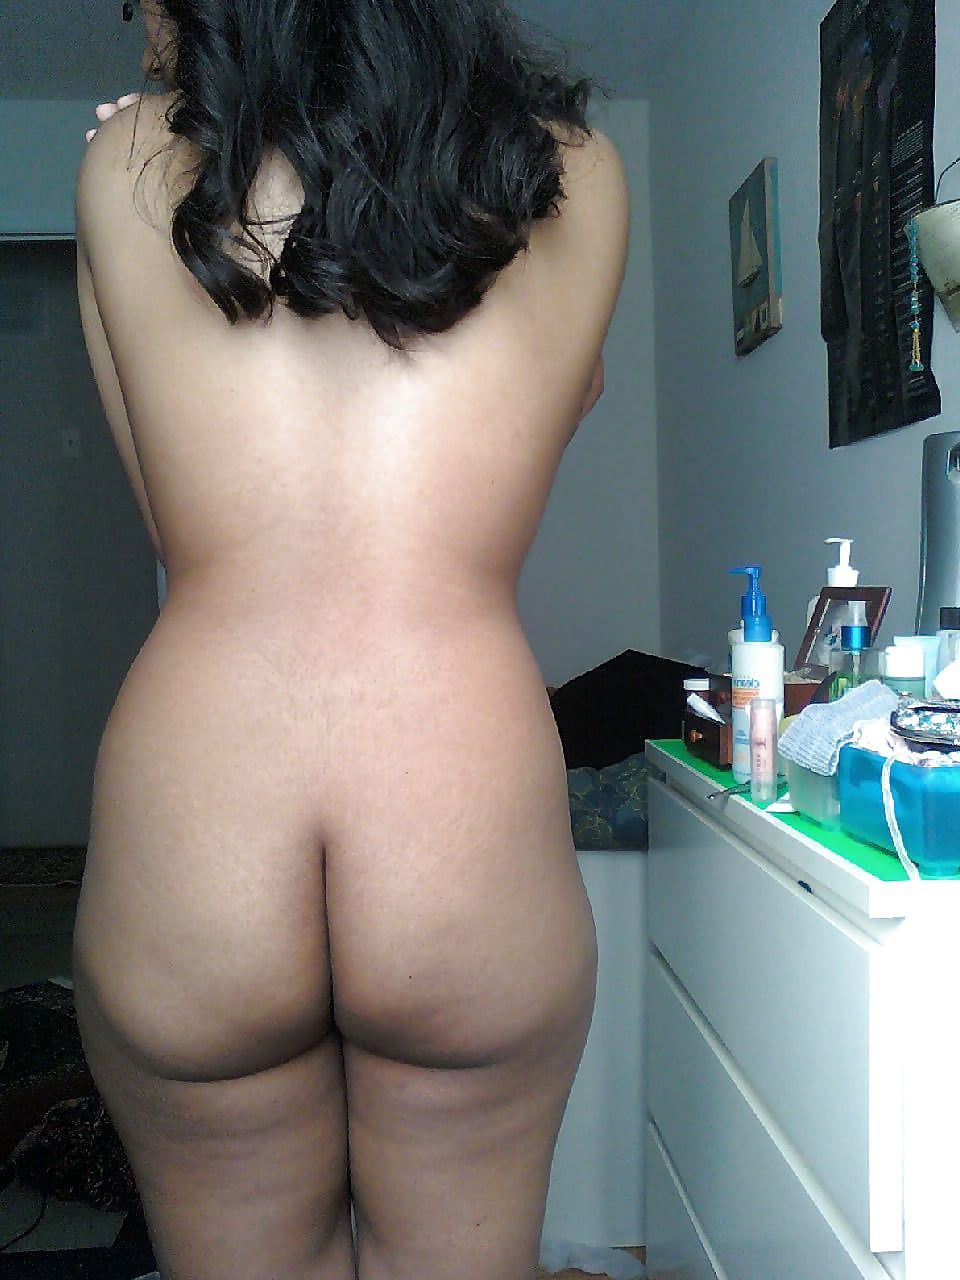 Indian hot nude ass images